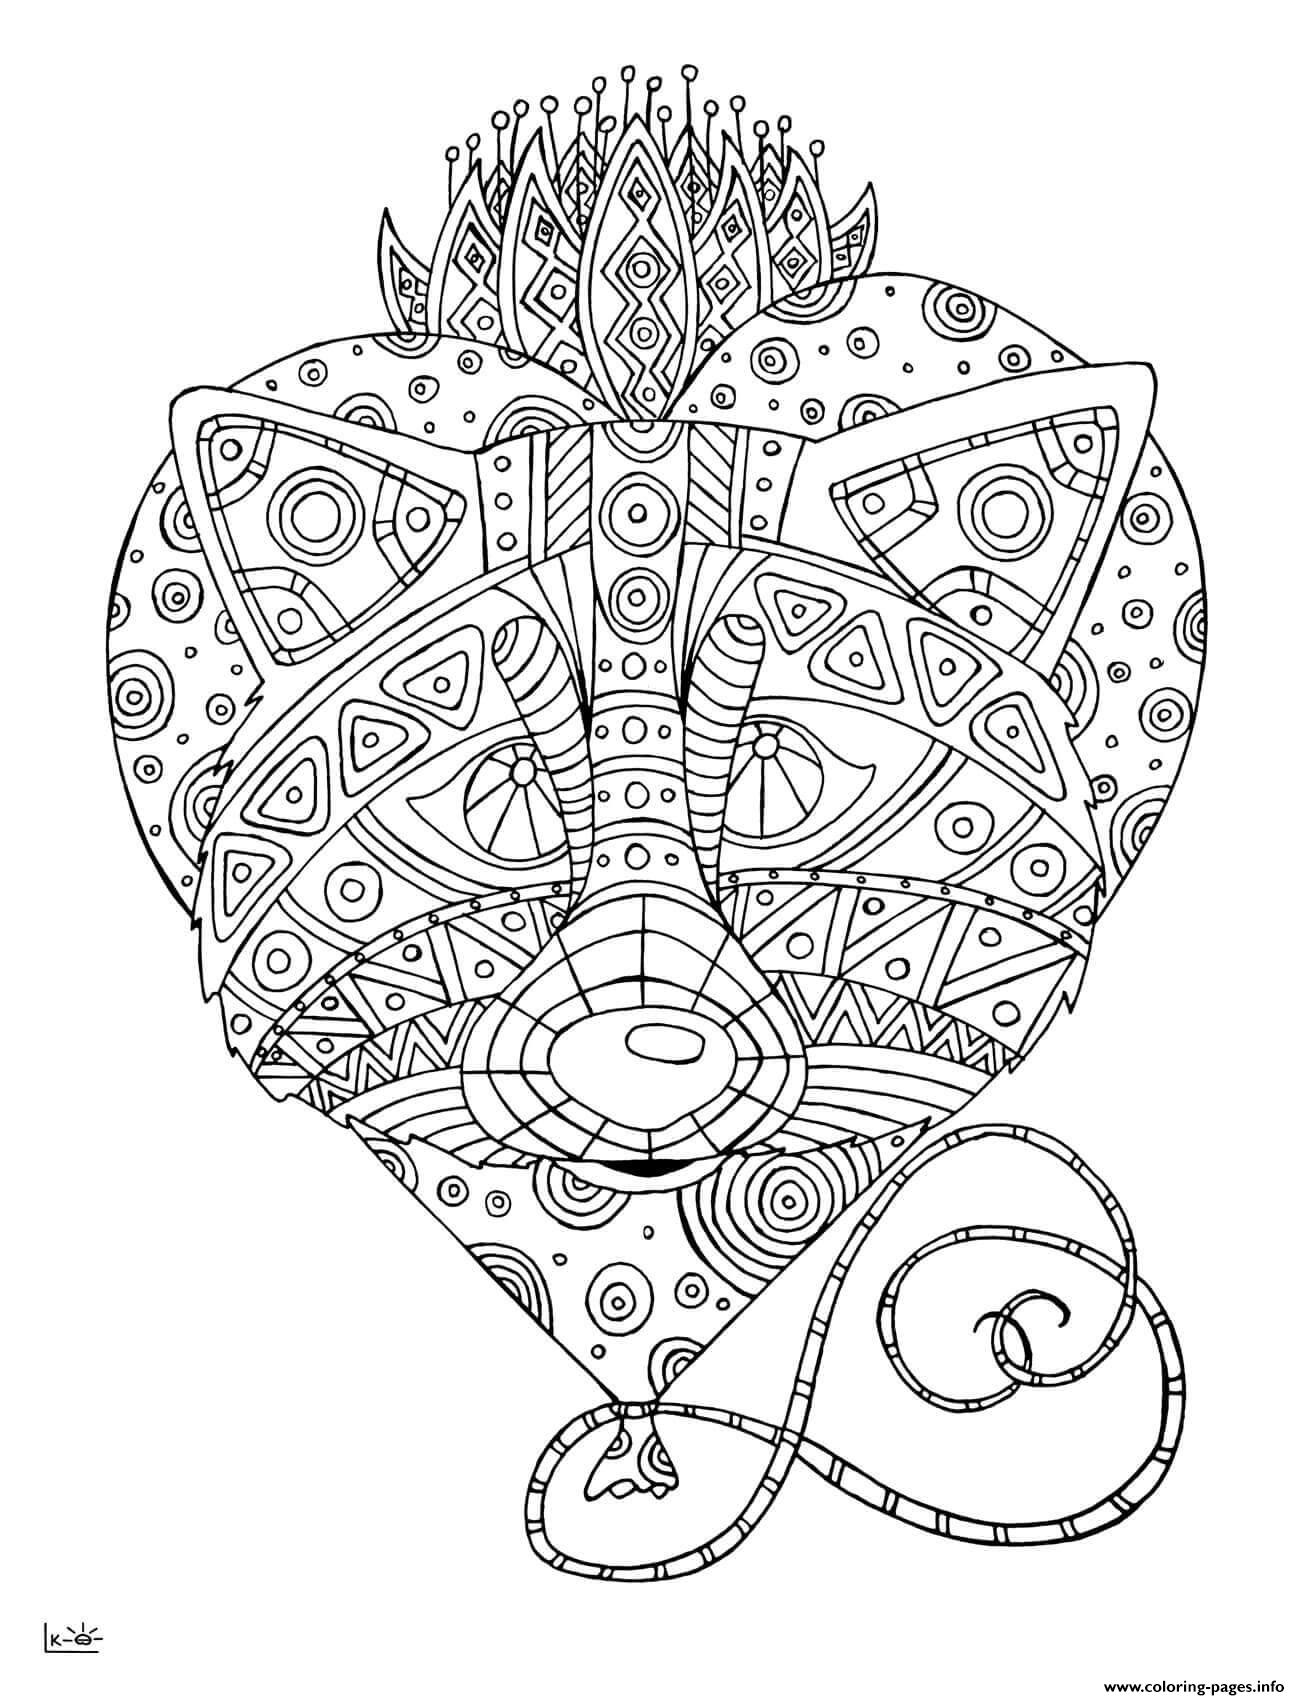 Tribal Coloring Pages Raccoon With Tribal Pattern Adults Coloring Pages Printable